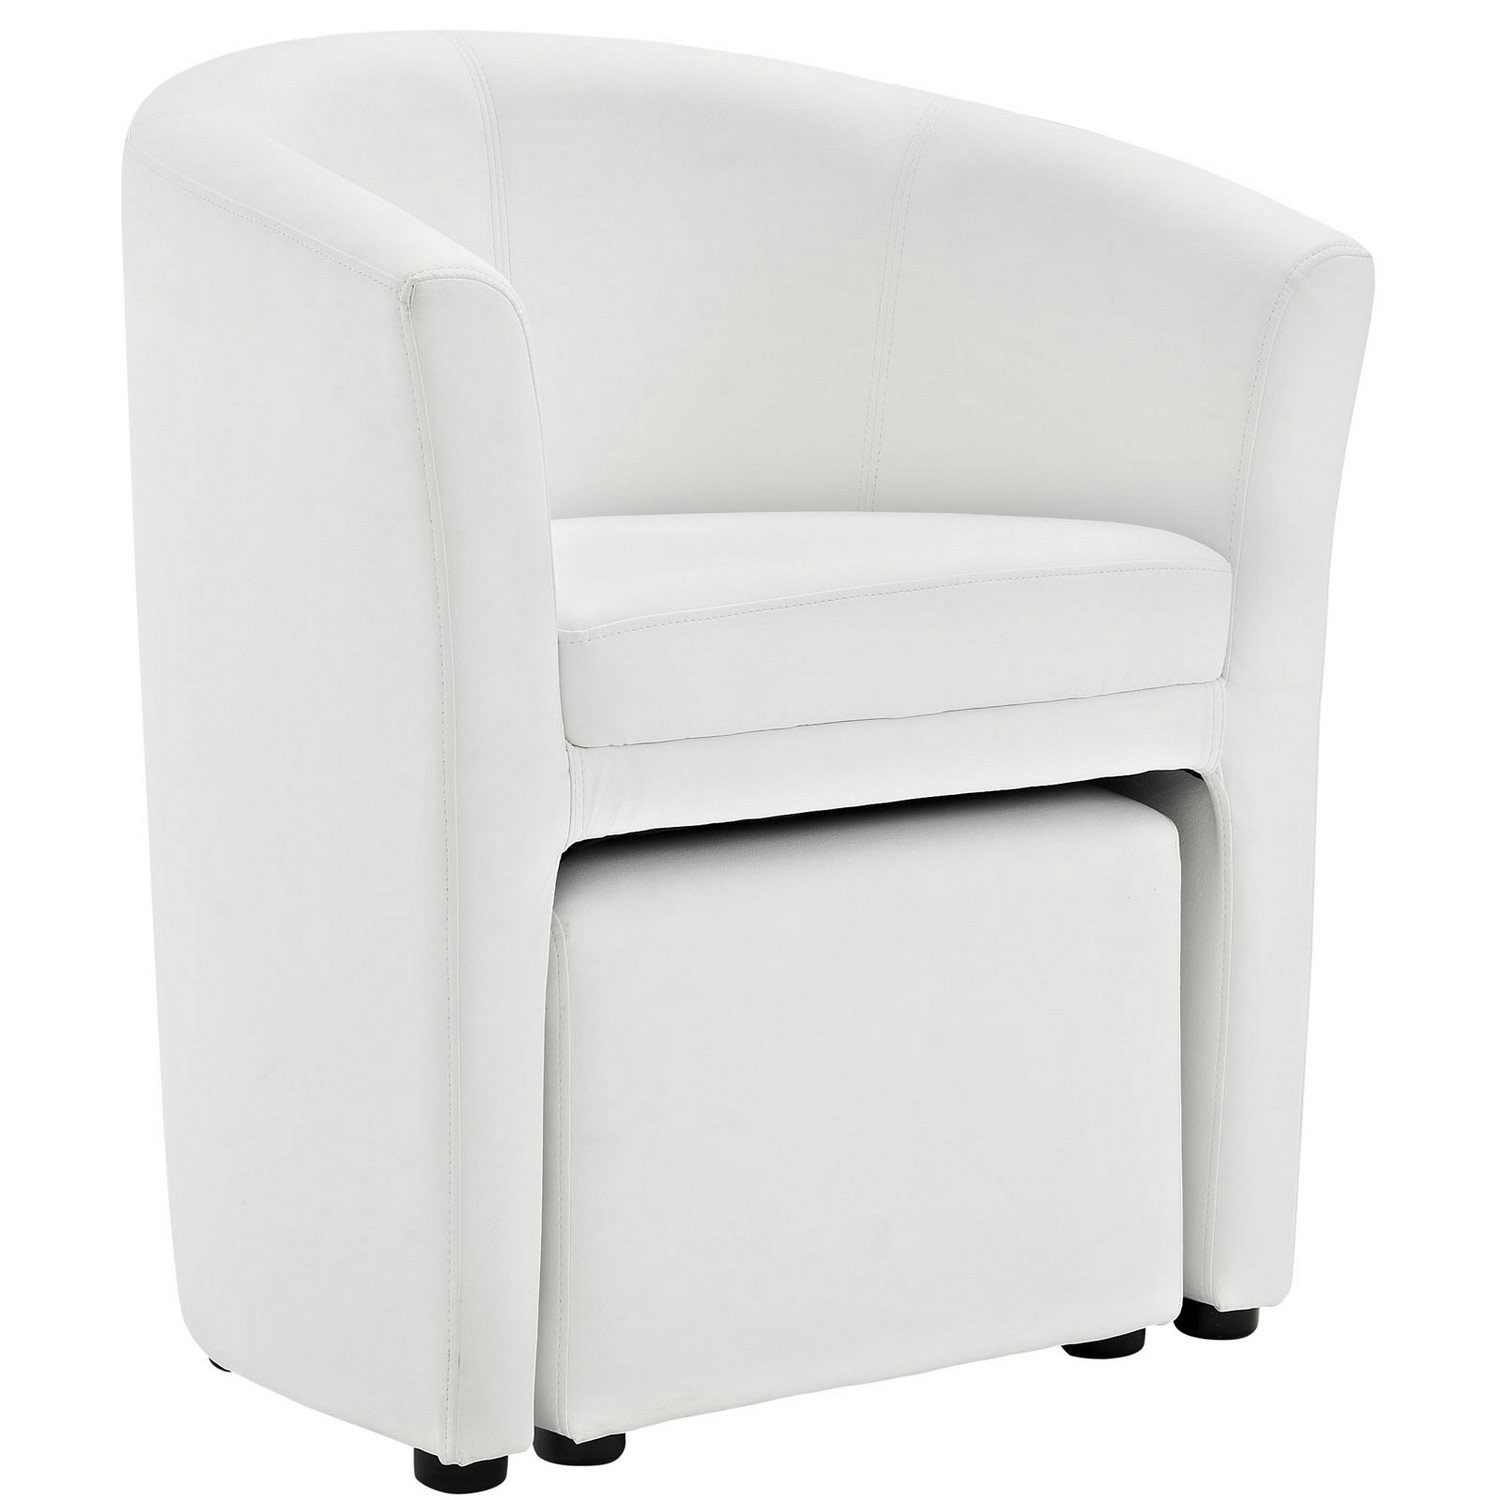 Modway Divulge Armchair and Ottoman - White